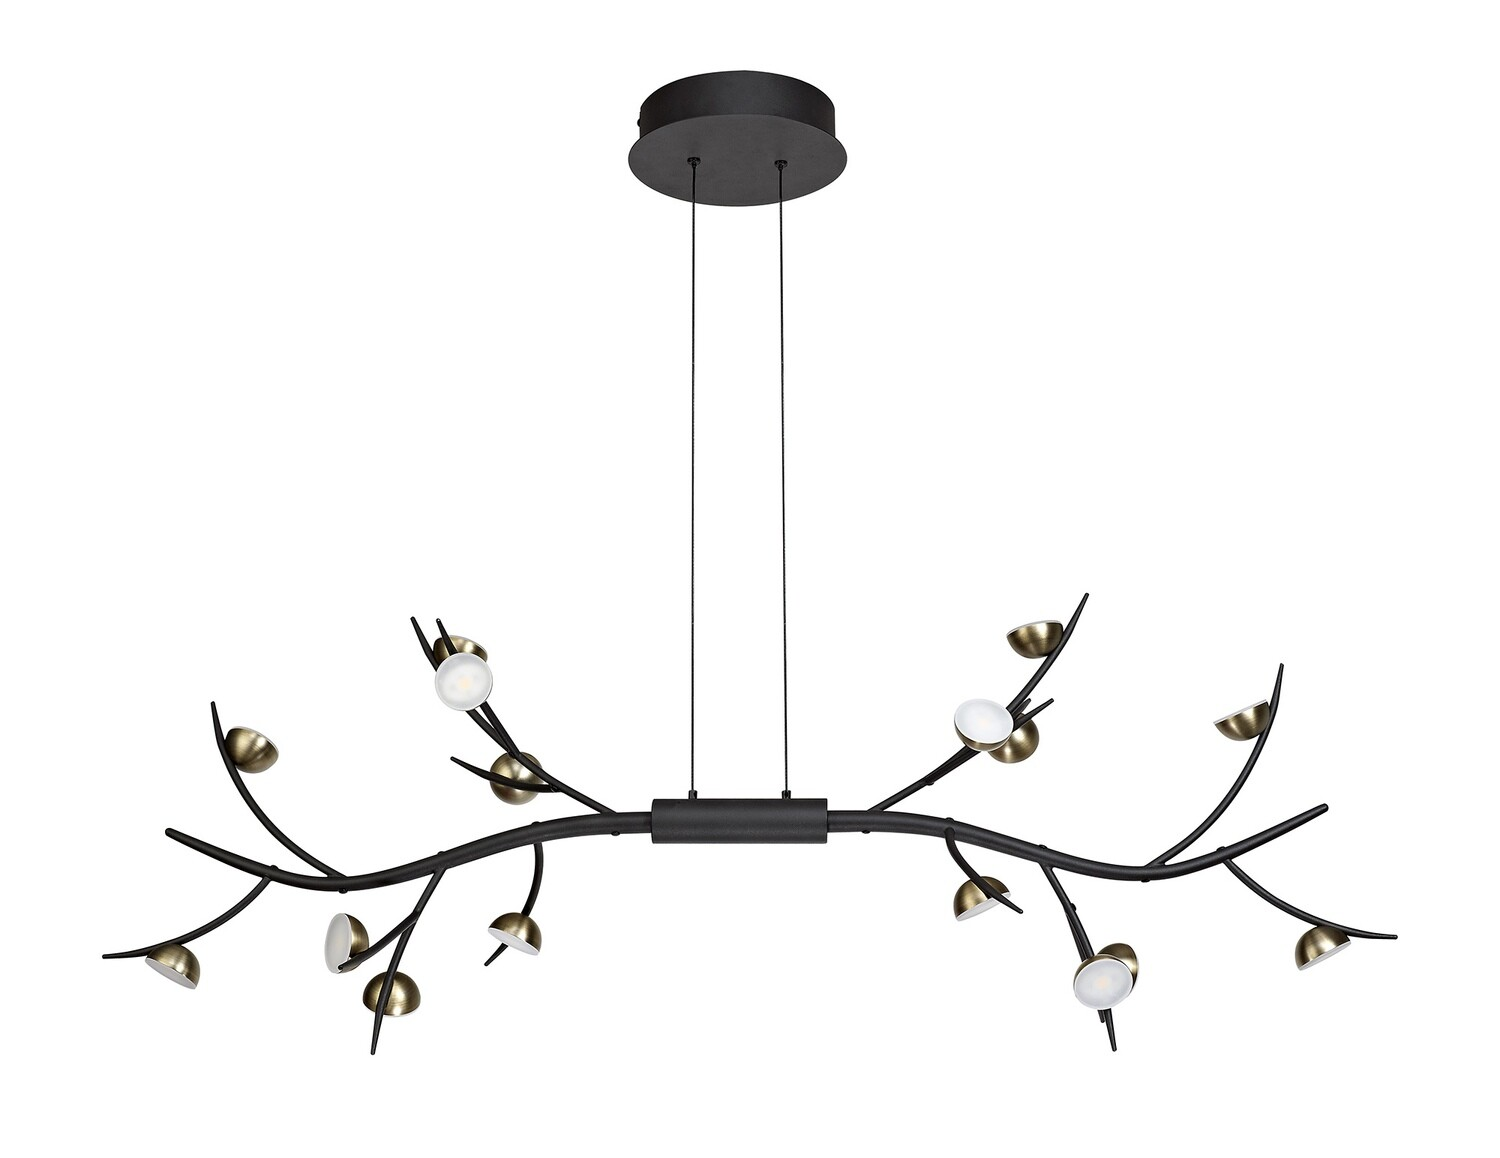 Zephyr 16 Light Linear Pendant, 16 x 3W LED, 3000K, 2640lm, Black/Antique Brass